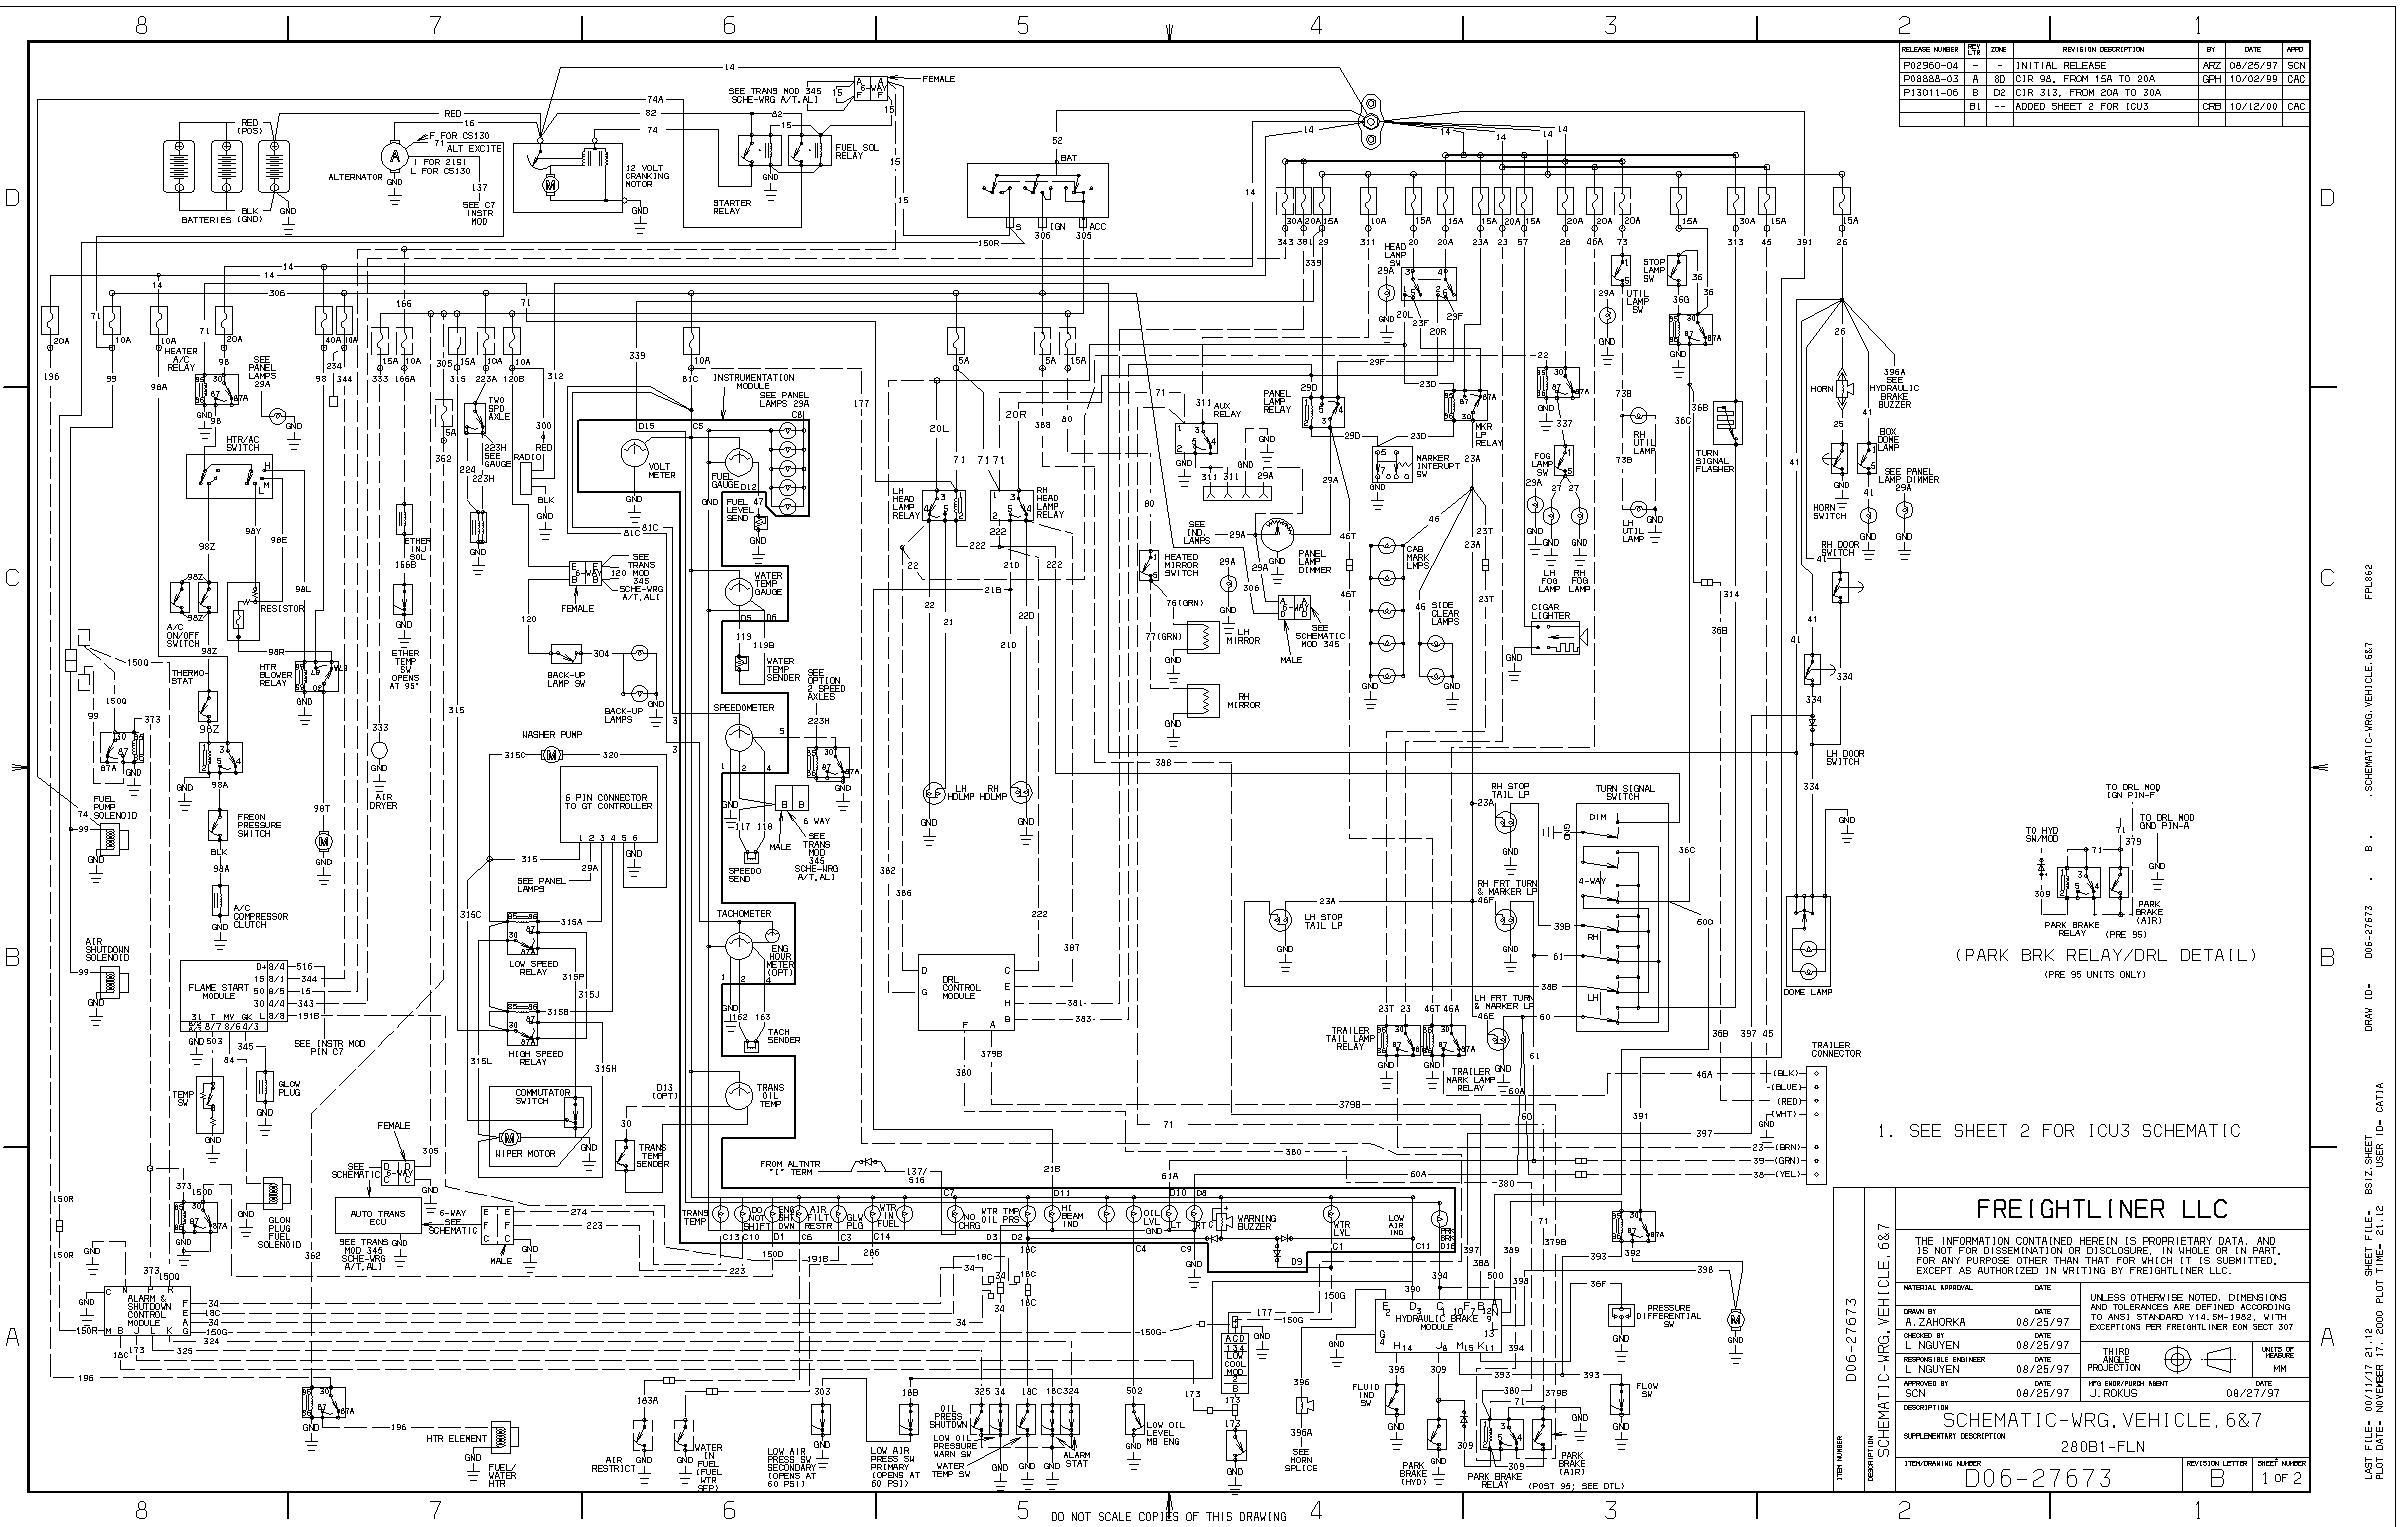 Astonishing Freightliner Wiring Diagrams Free 51 In And